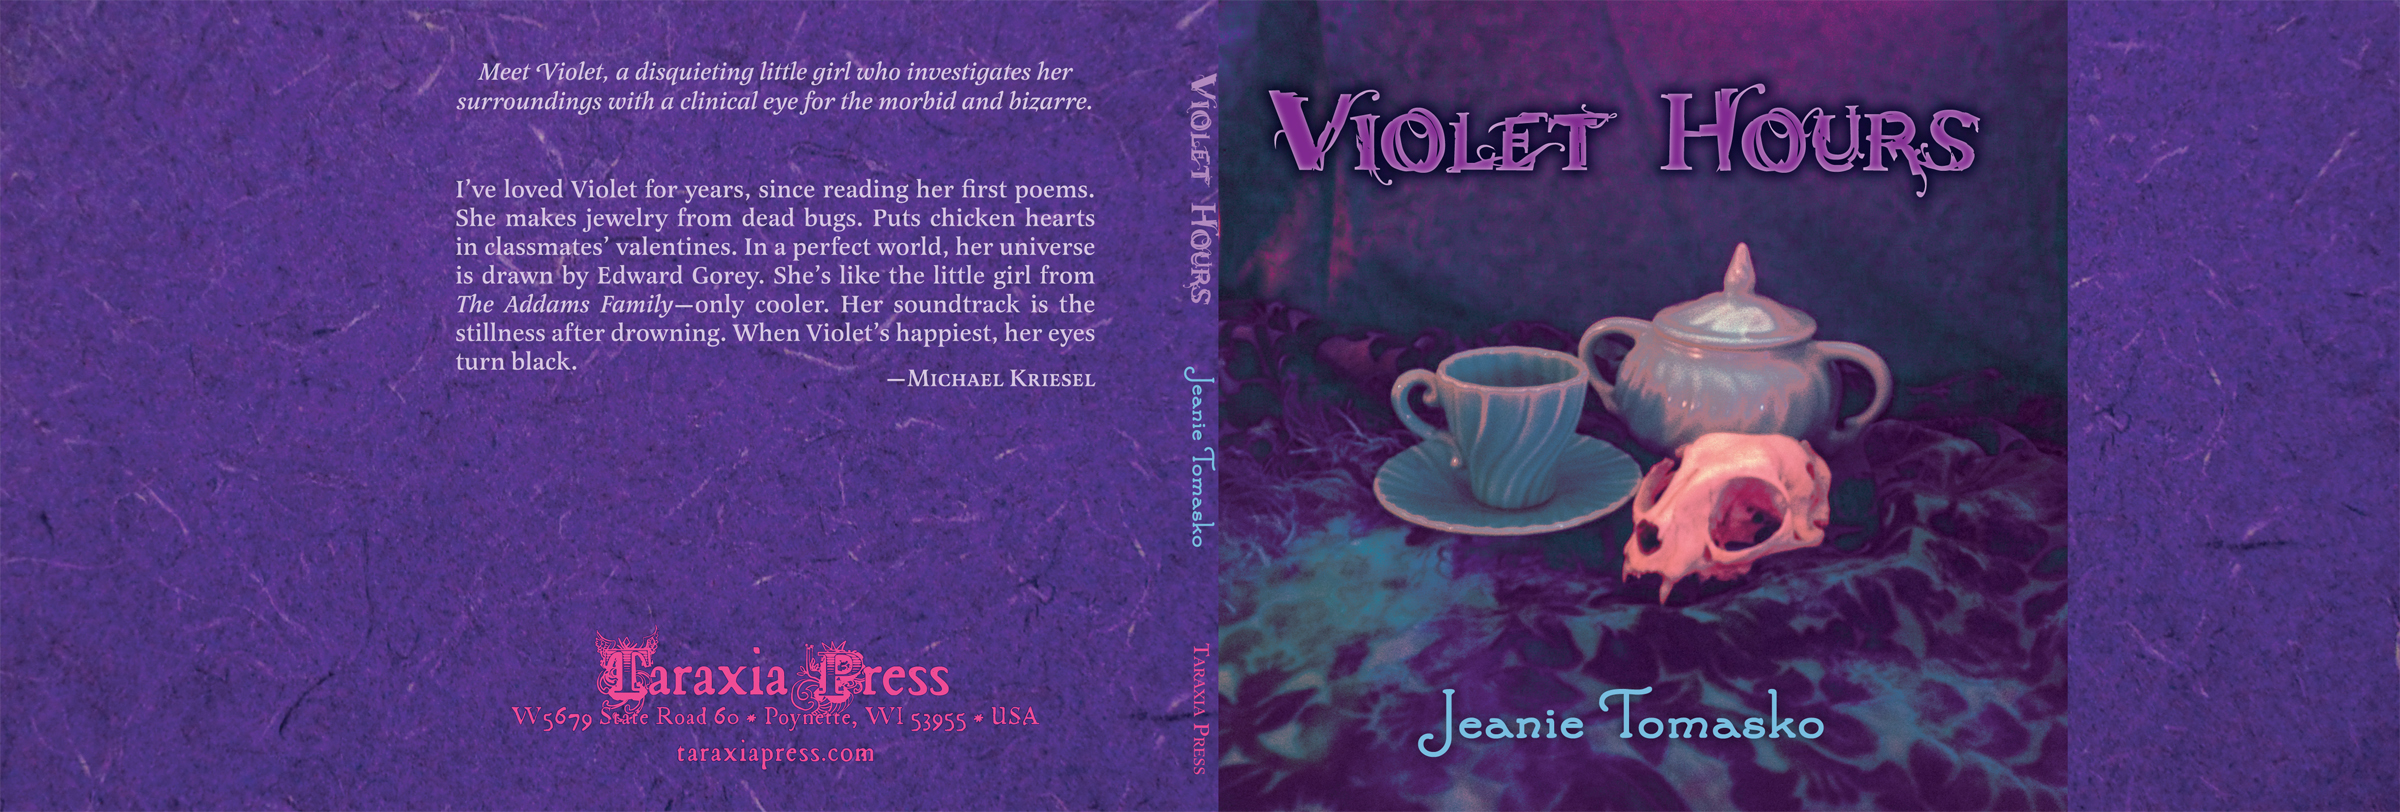 VioletHours_cover  small.jpg